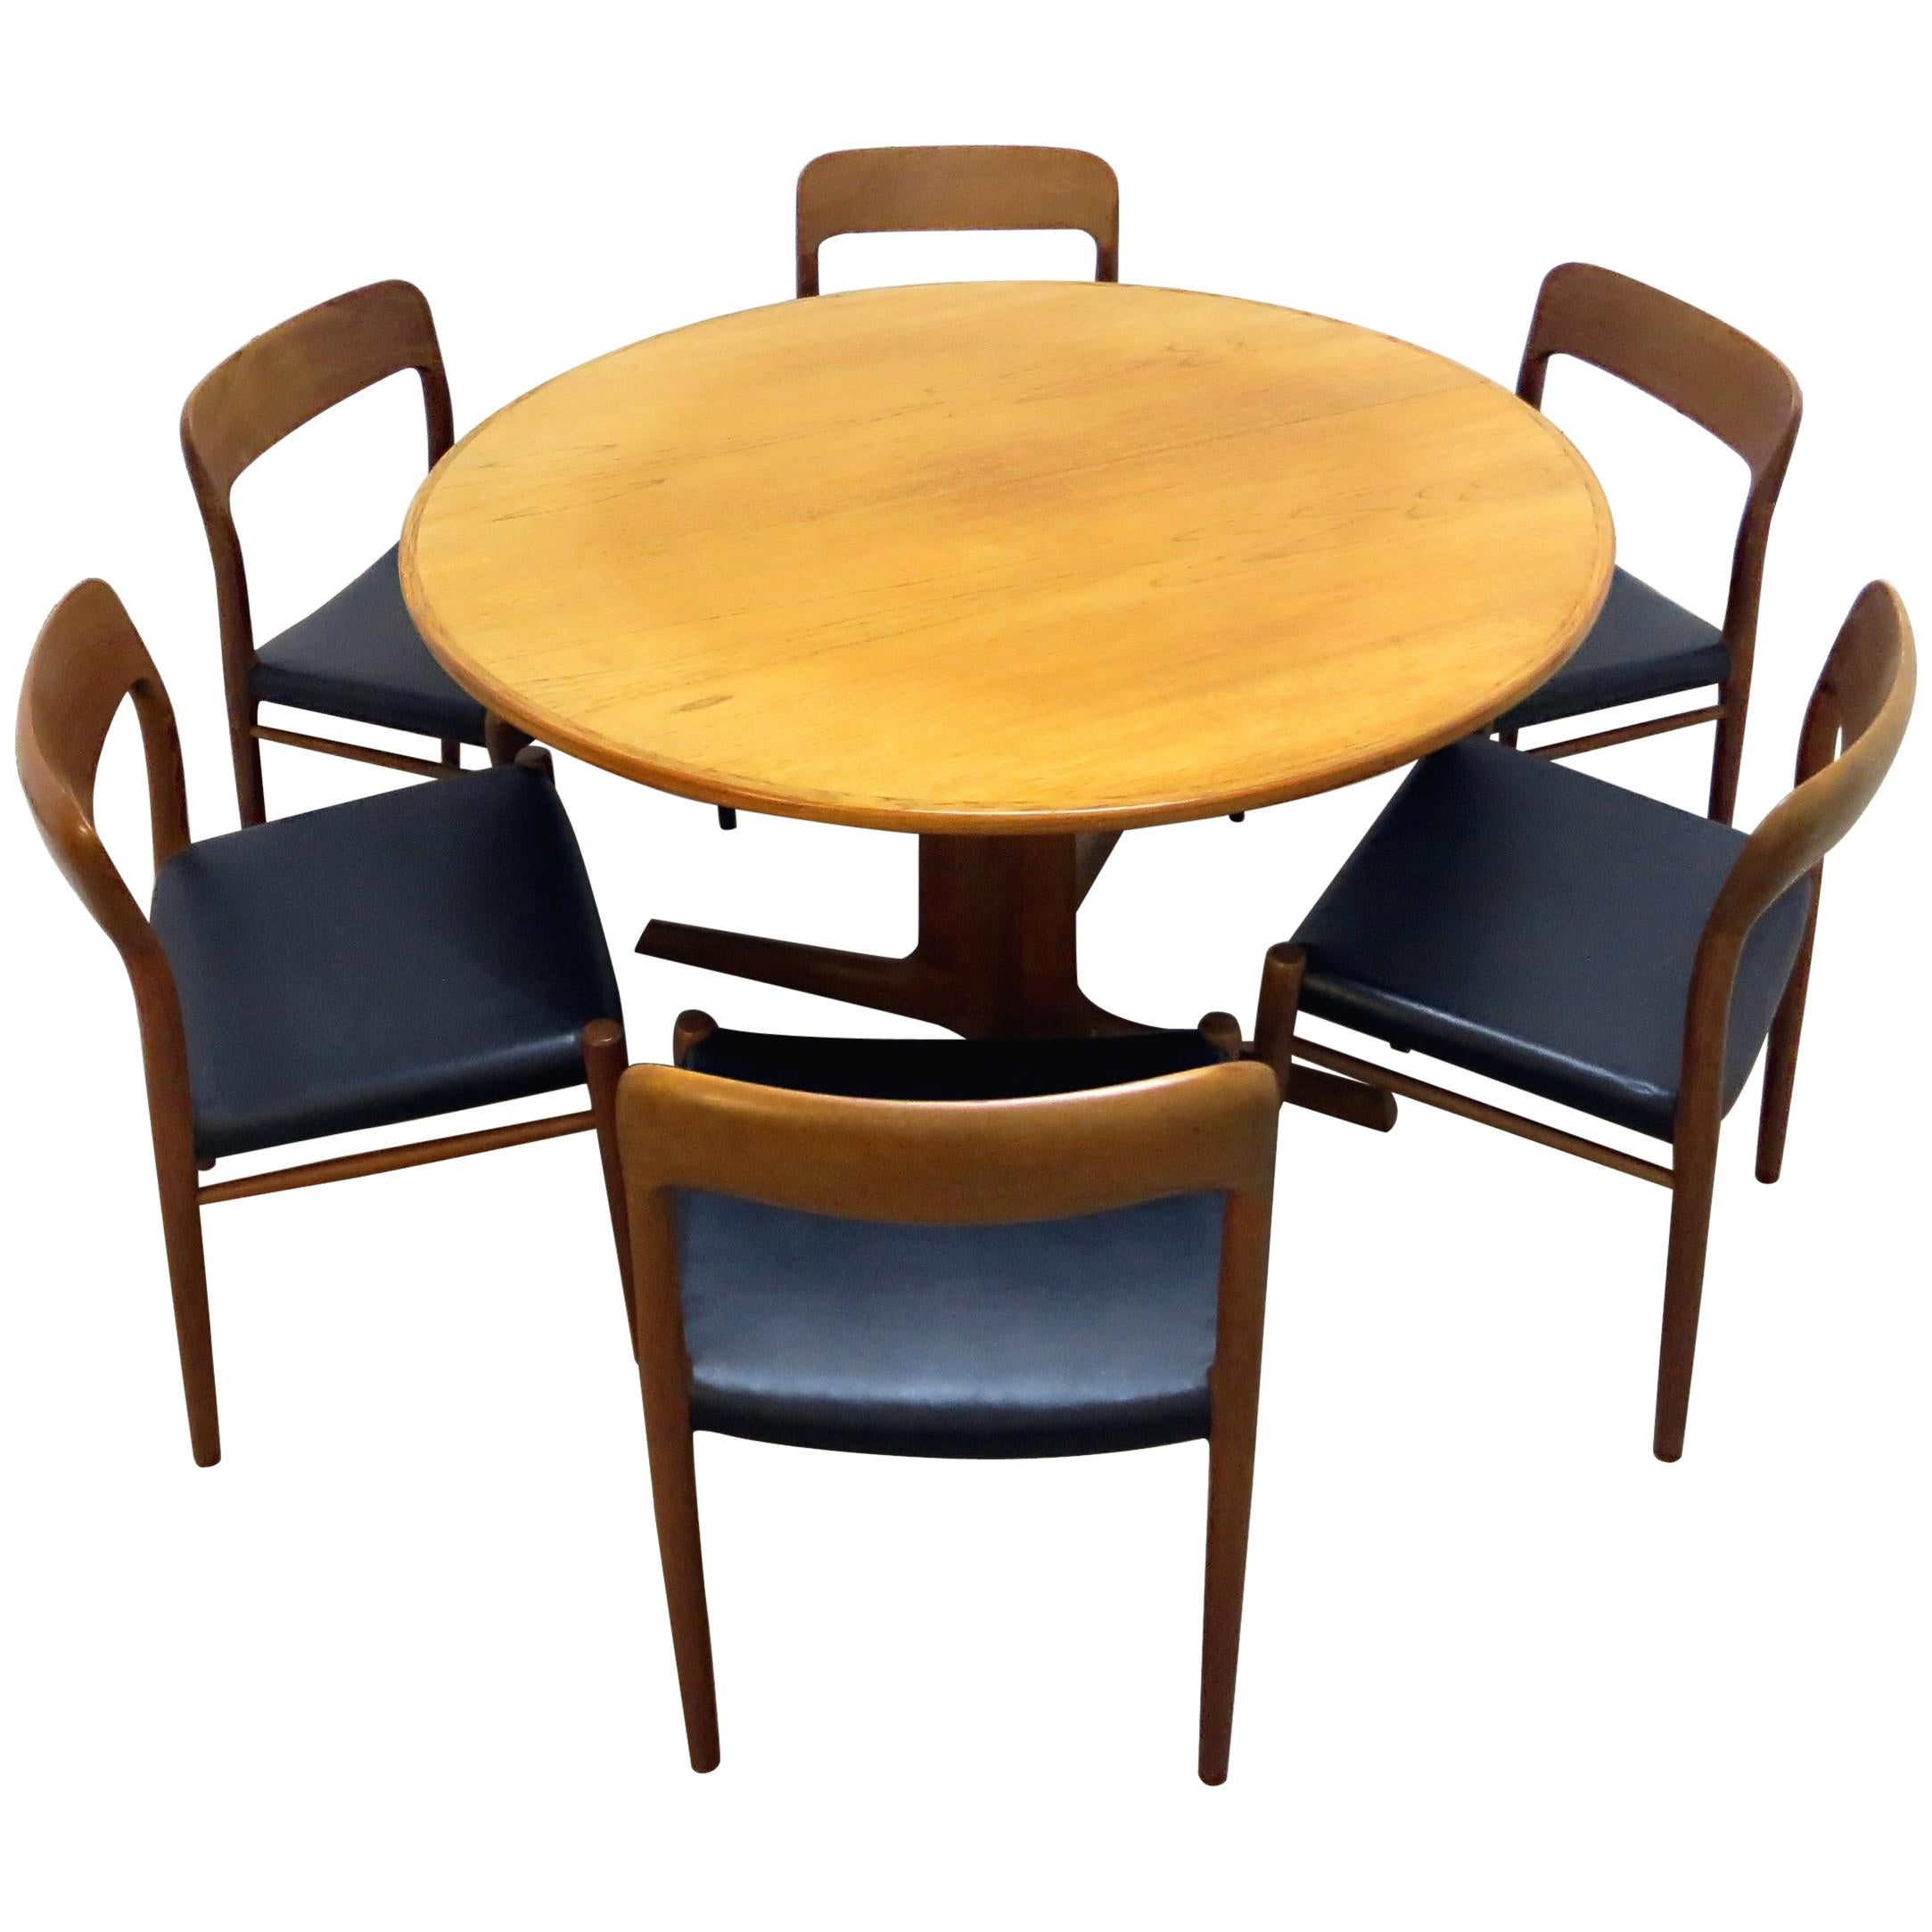 Enjoyable Modern Dining Table And Chair Sets 434 For Sale On 1Stdibs Download Free Architecture Designs Aeocymadebymaigaardcom